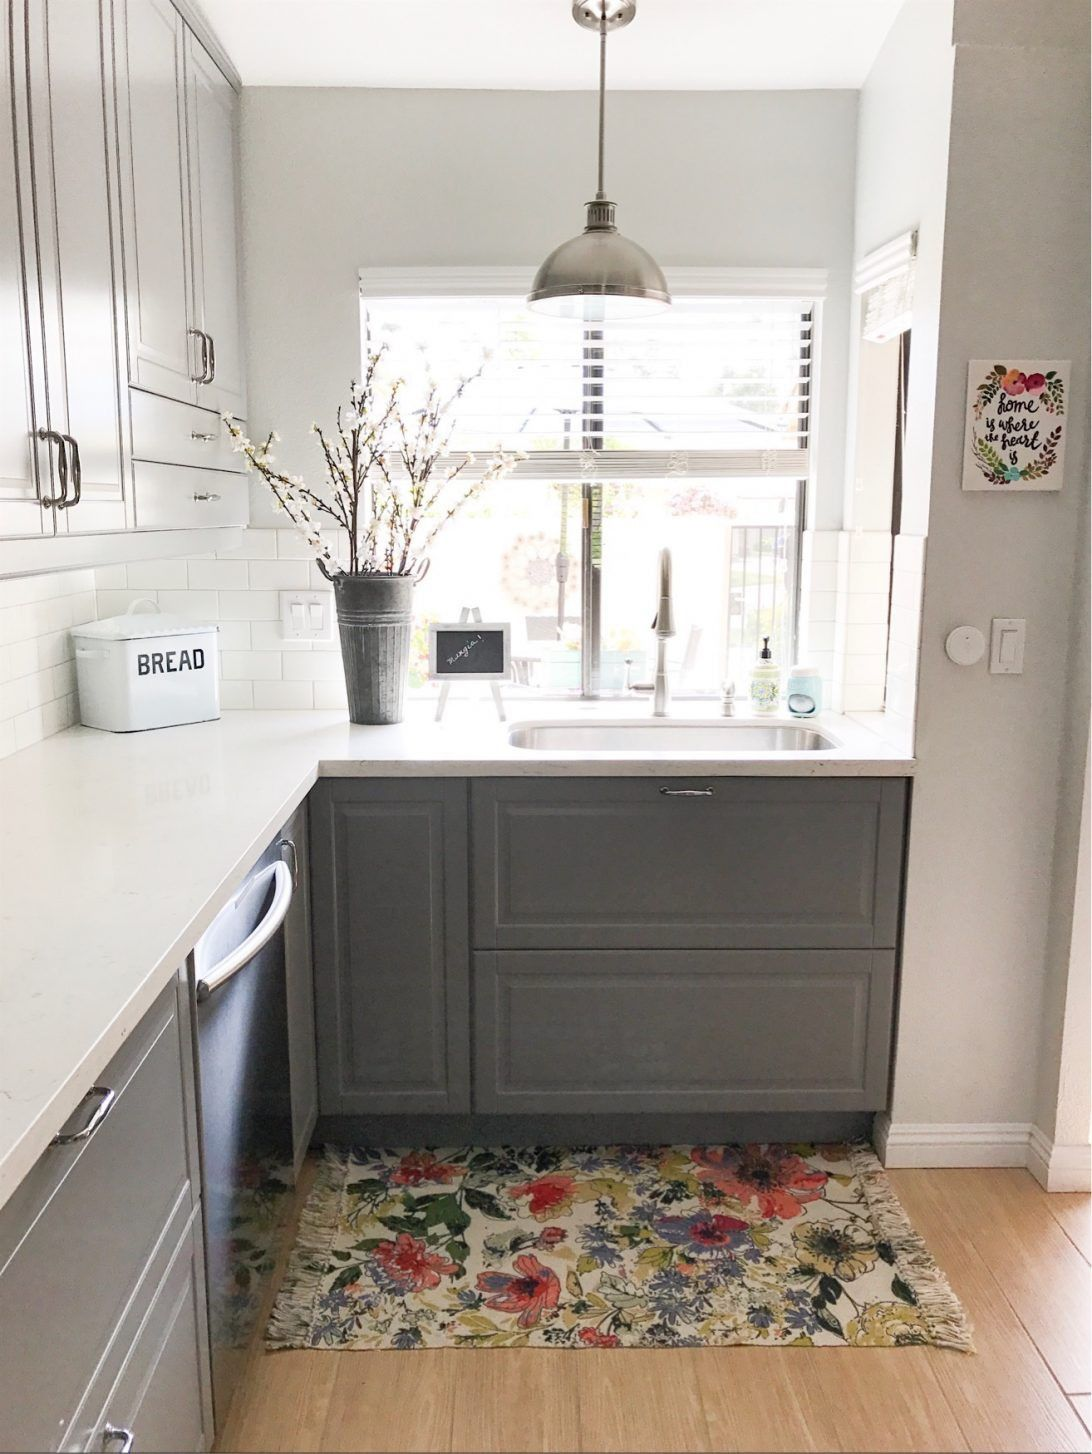 Luxury Ikea Kitchen Cabinets Average Cost The Most Elegant In Addition To Beautiful Ikea Kitchen Cabinets Average Cost Pertaining To Inspire The House Presen